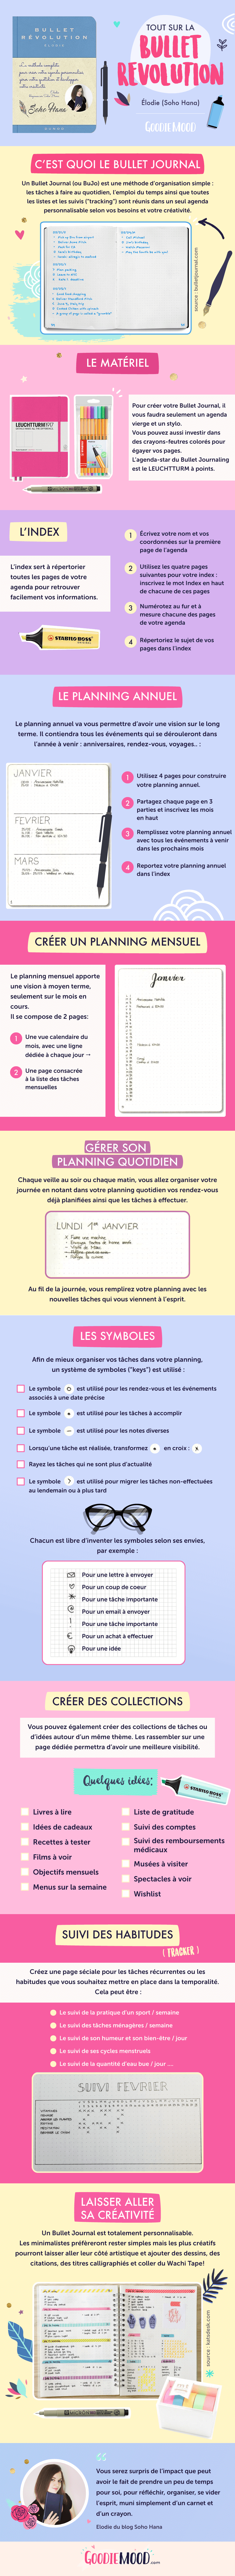 "🦄✔️Tout savoir sur le Bullet Journal avec le livre ""Bullet Revolution"" de Elodie du blog Soho Hana. Sur Goodie Mood, le blog Feel Good et Créativité #BuJo #bulletJournal #creativite #organisation #planning #tracking #sohohana #goodiemood #blogfille #methode #motivation"